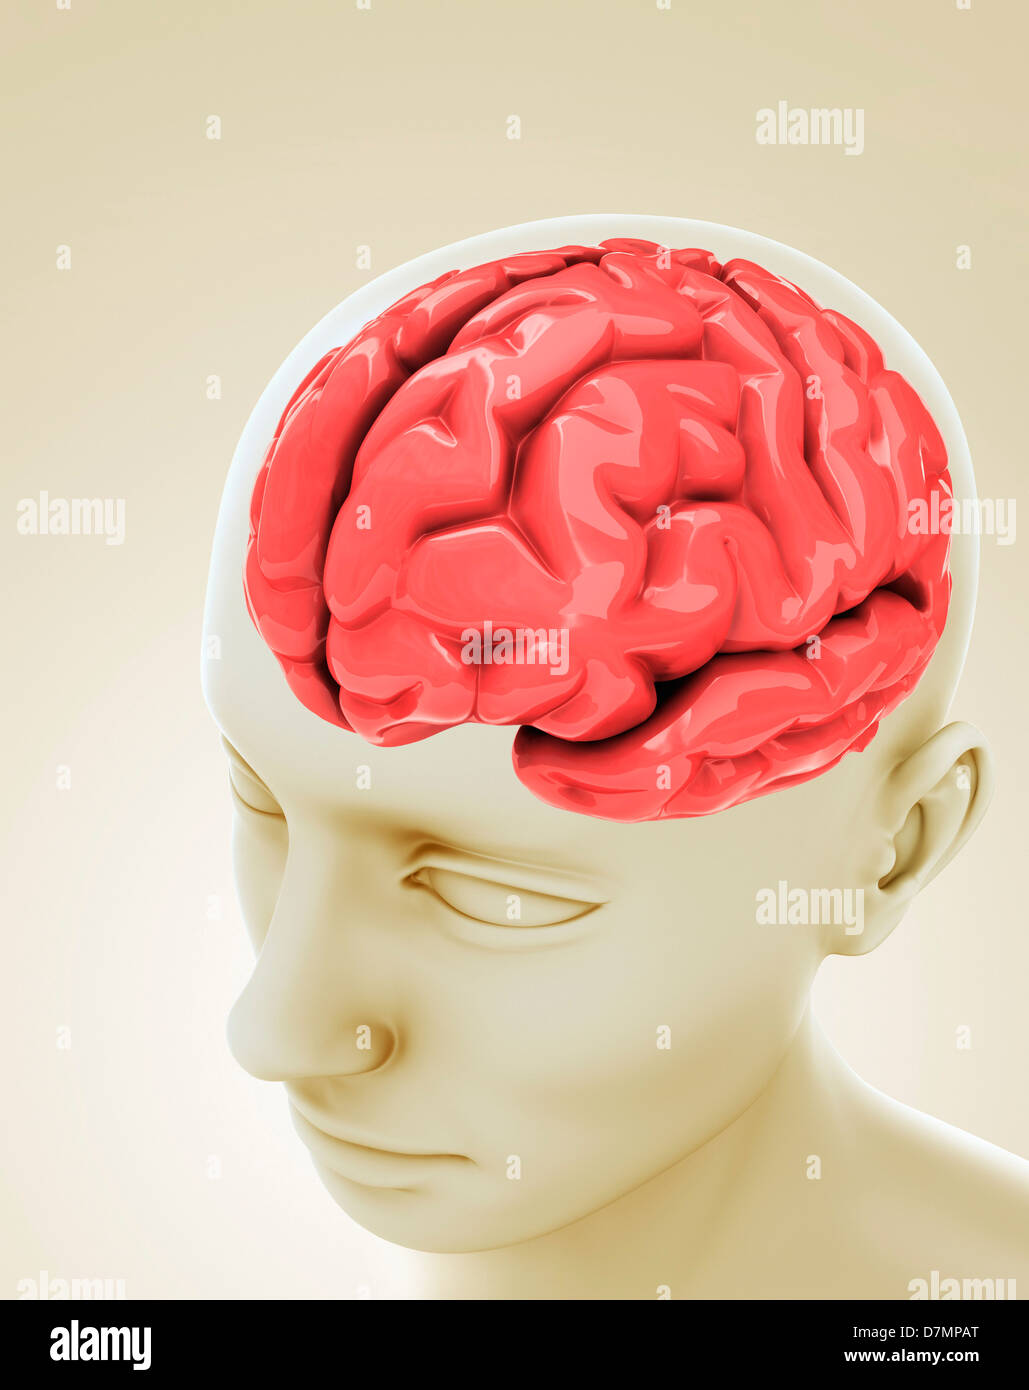 Cerveau humain, artwork Photo Stock